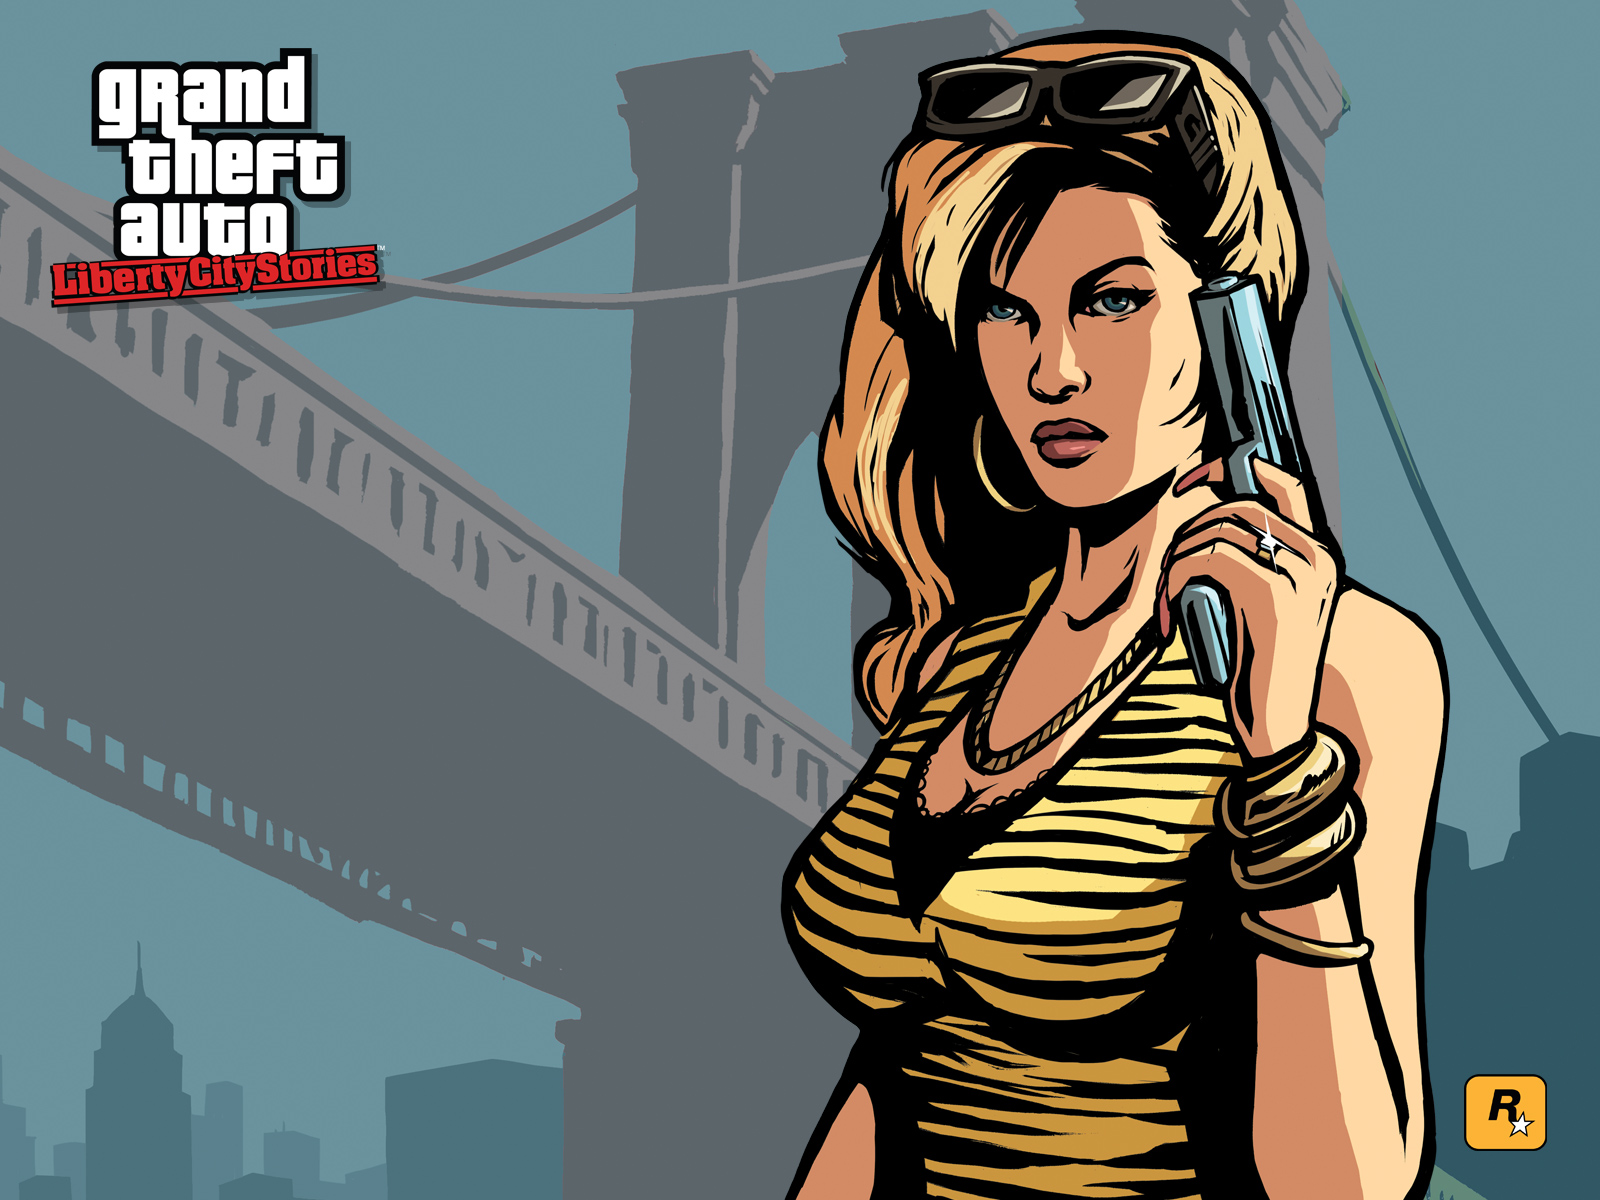 Gta liberty city stories wallpapers gta liberty city stories image gta liberty city stories wallpapers and stock photos voltagebd Images